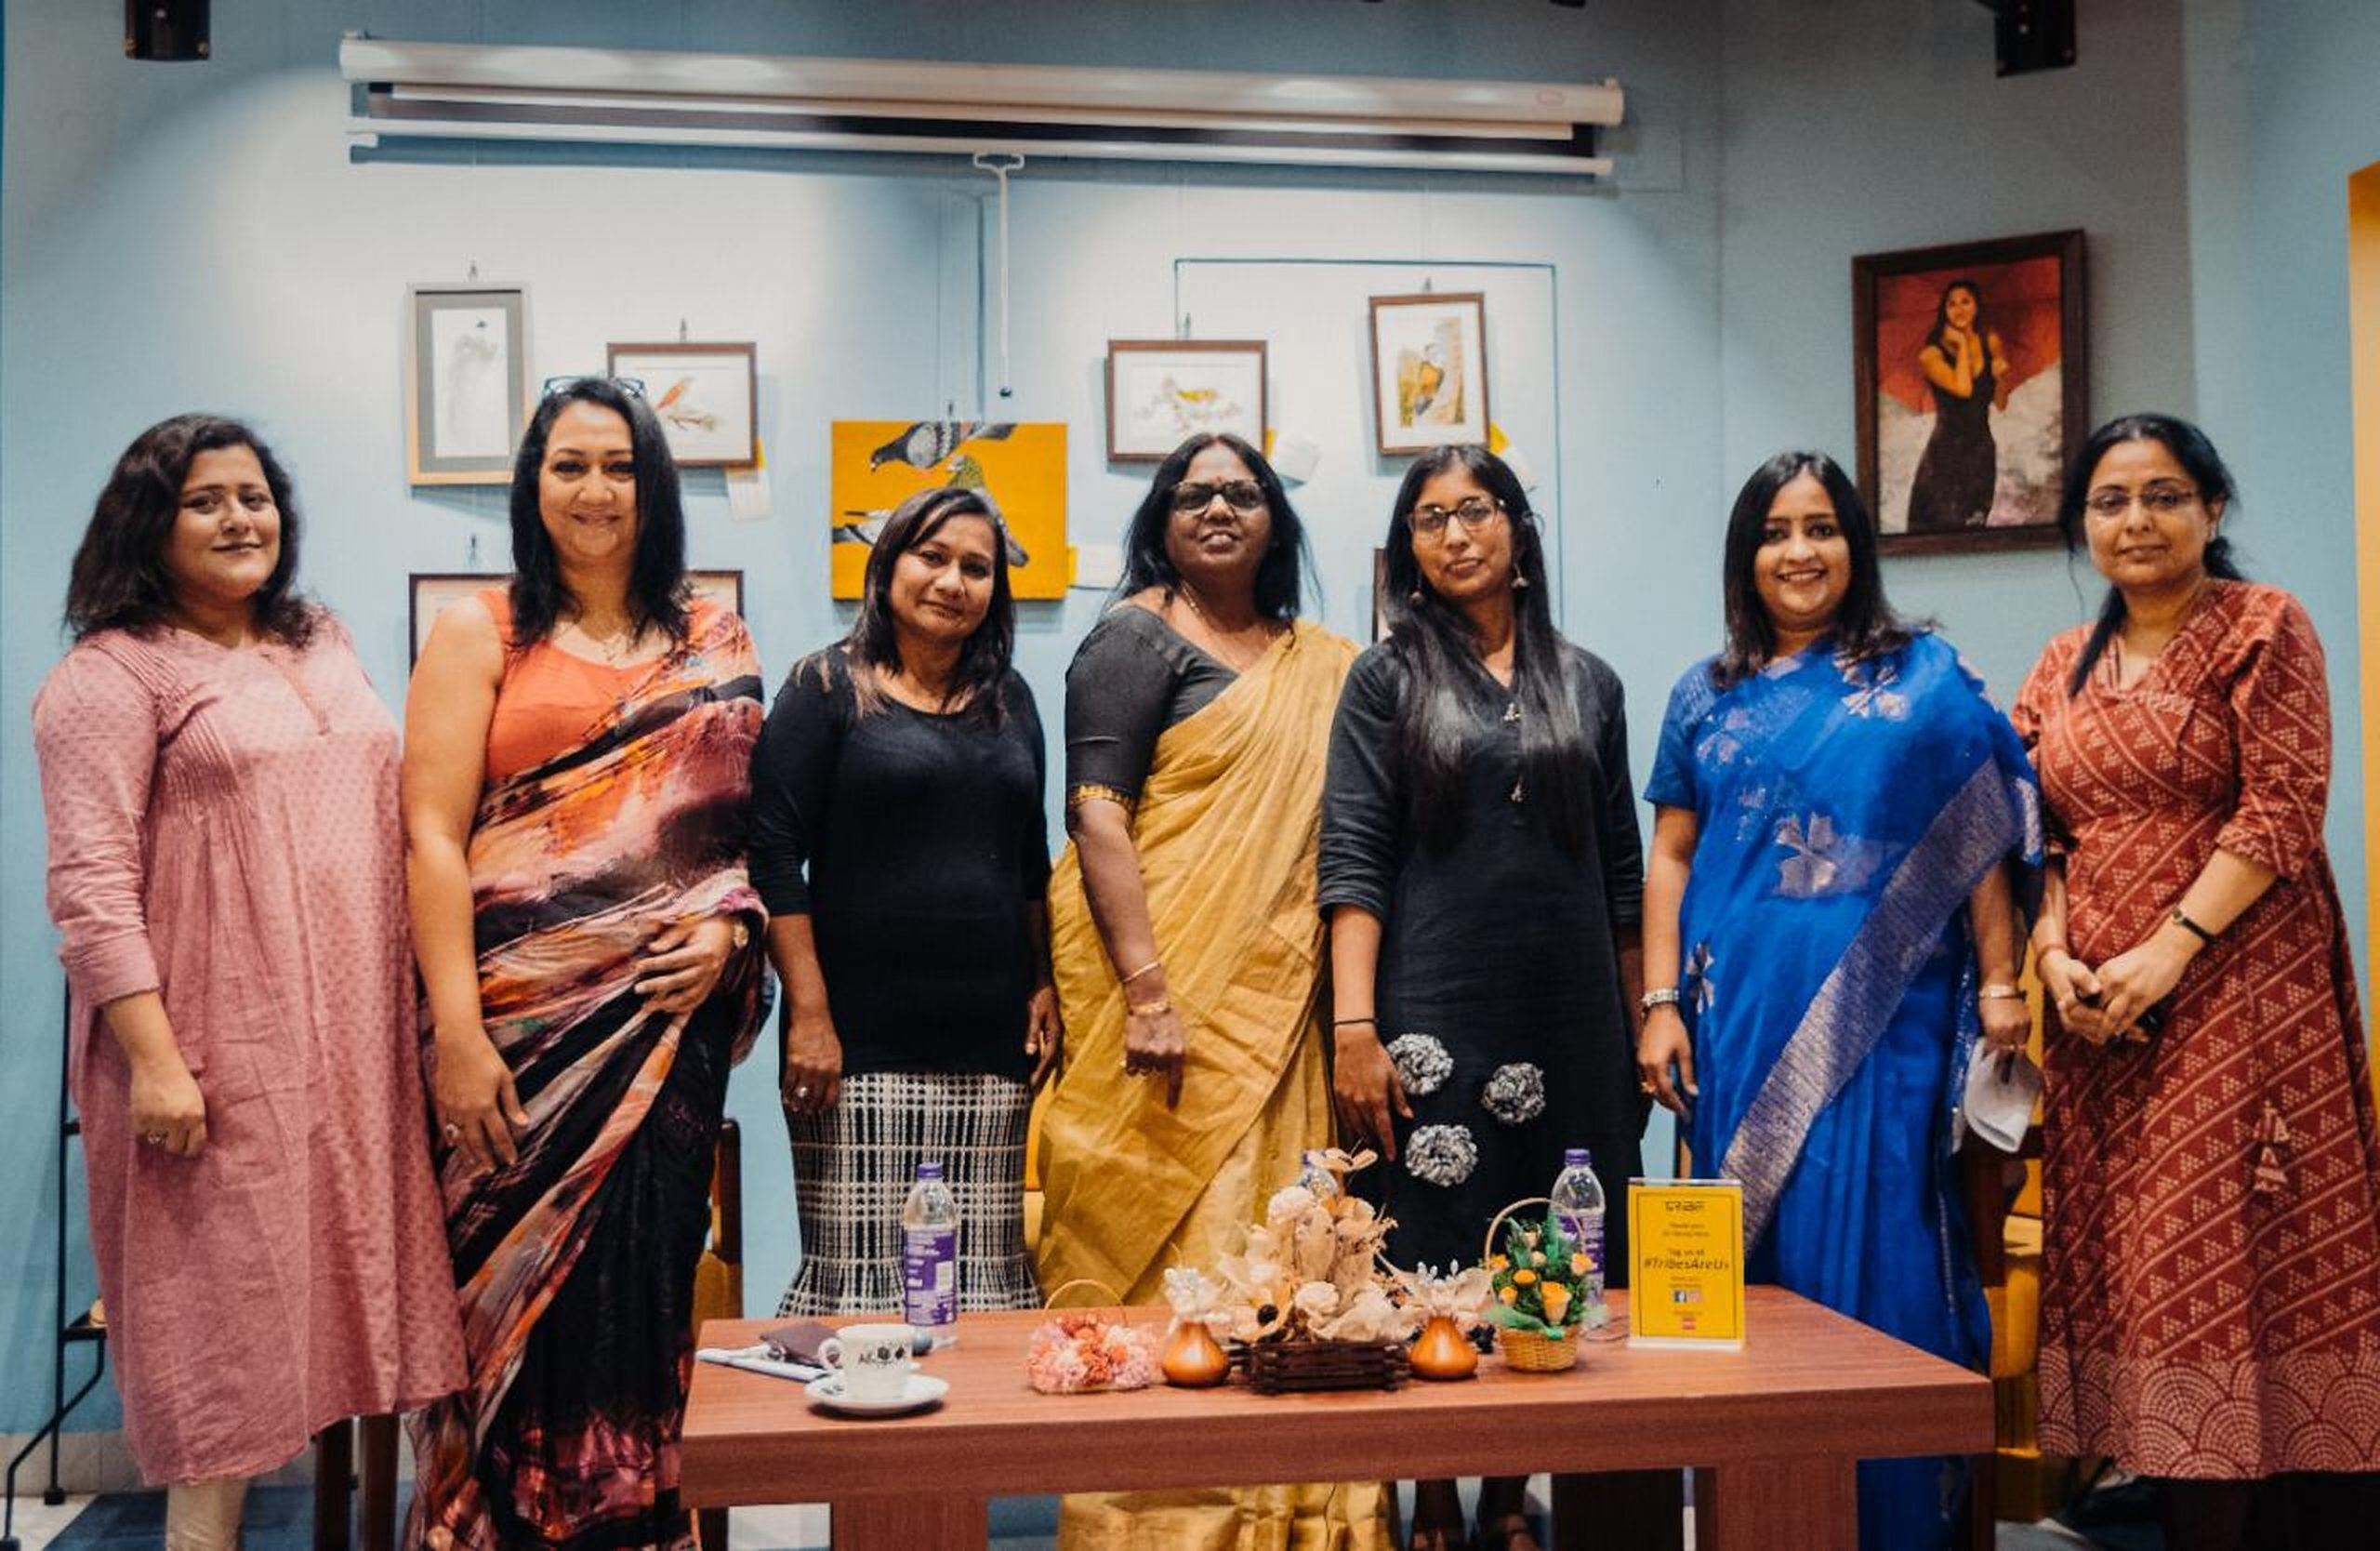 An Emerging Voice on Women's Equality: Together we can bring change